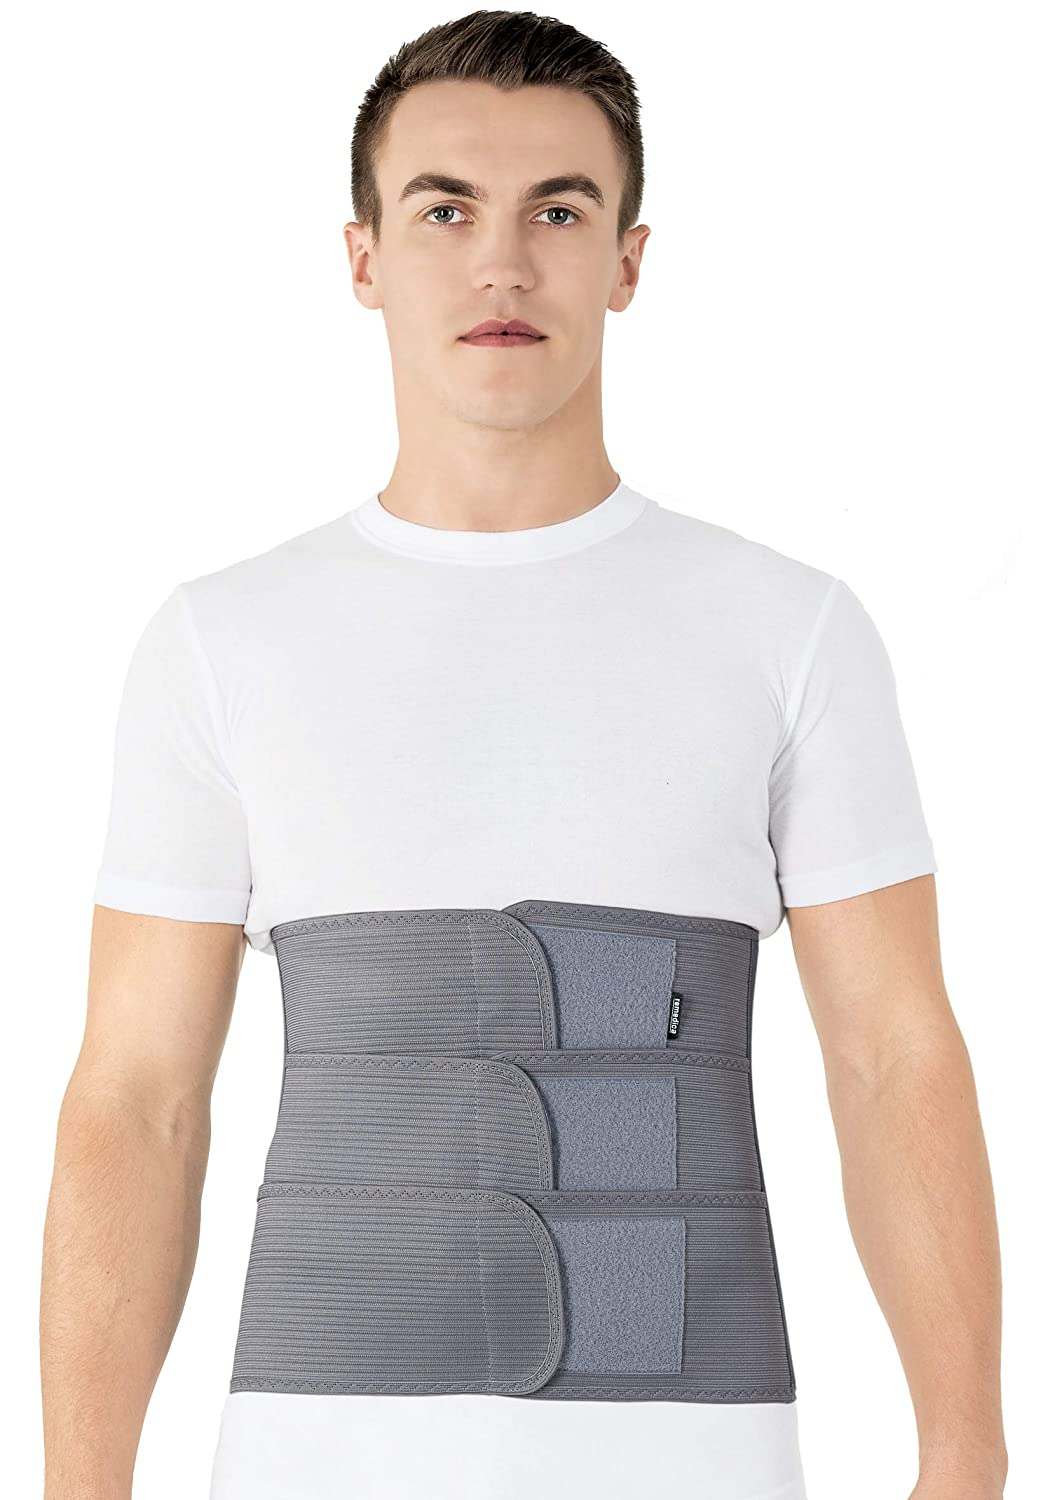 Back Support Brace Lumbar Belt with Rigid Heigh Fixation Ribs Cheap 6 Max 80% OFF